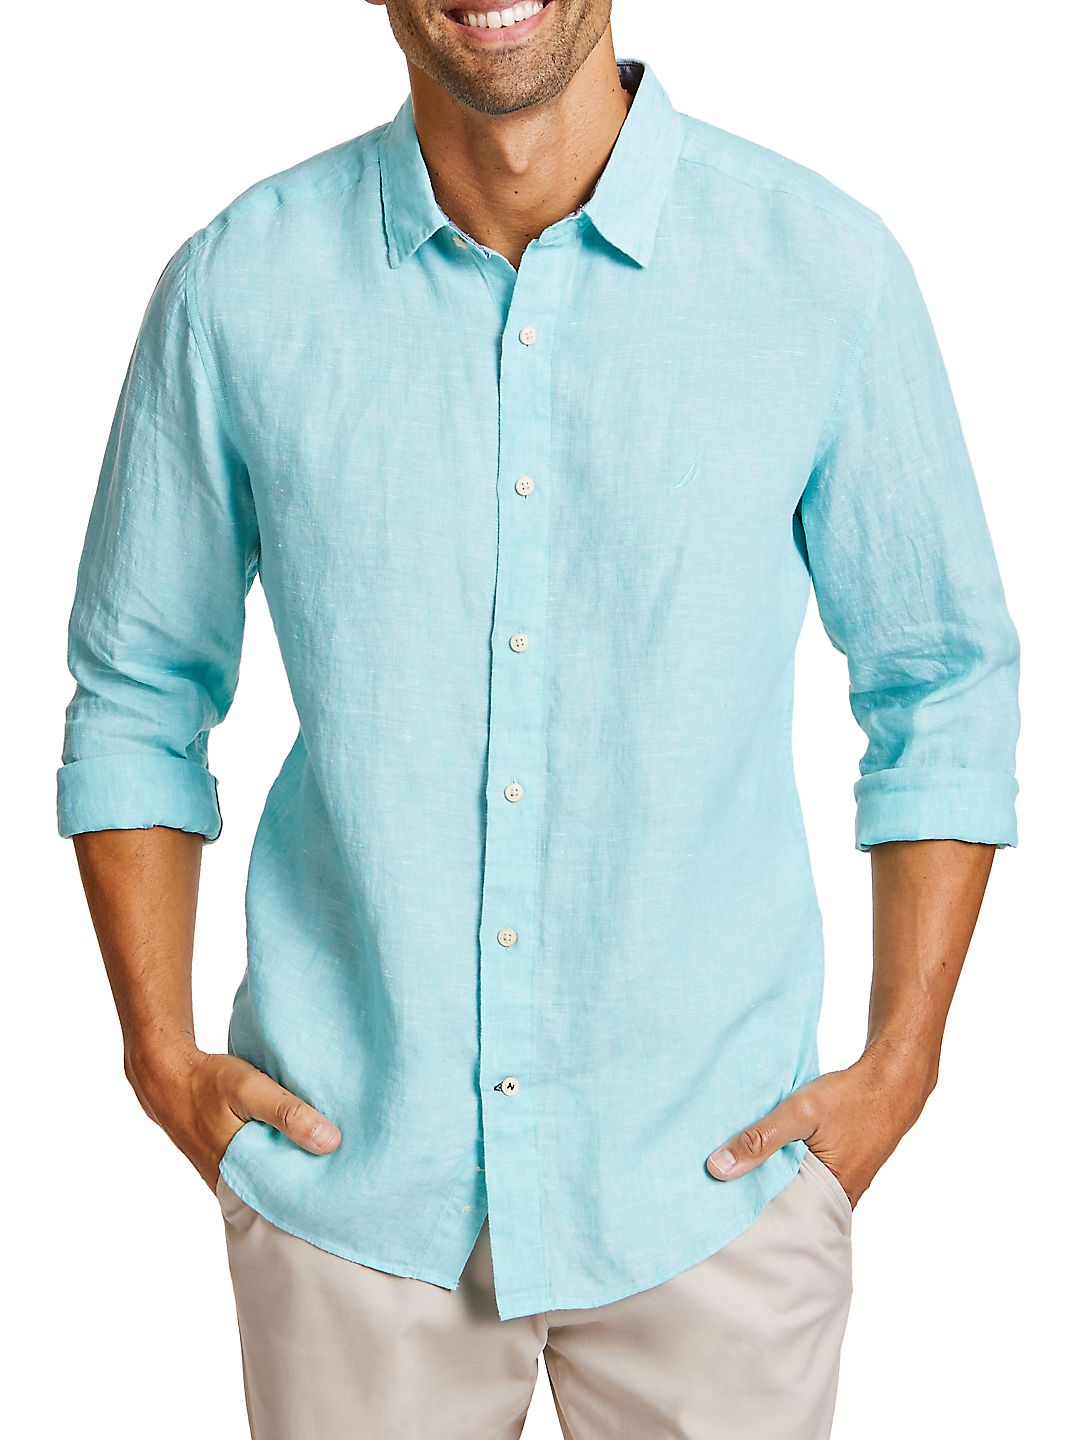 Heathered Linen Casual Button-Down Shirt